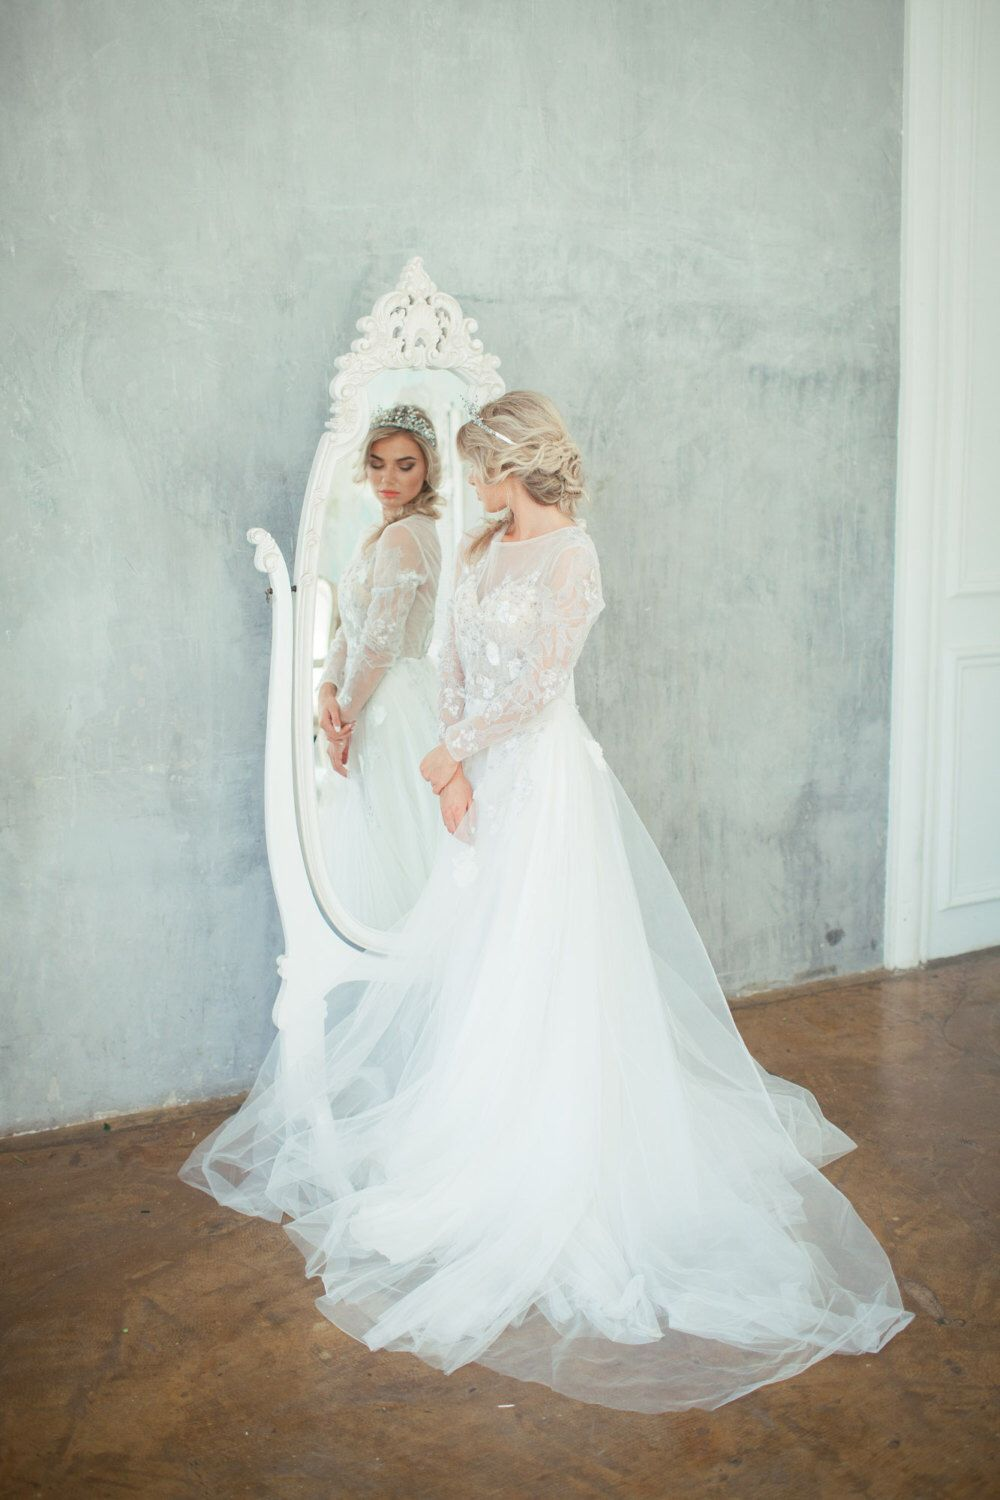 Design your own wedding dress near me  Pin by Wedding Dresses on Wedding Dresses Blush  Pinterest